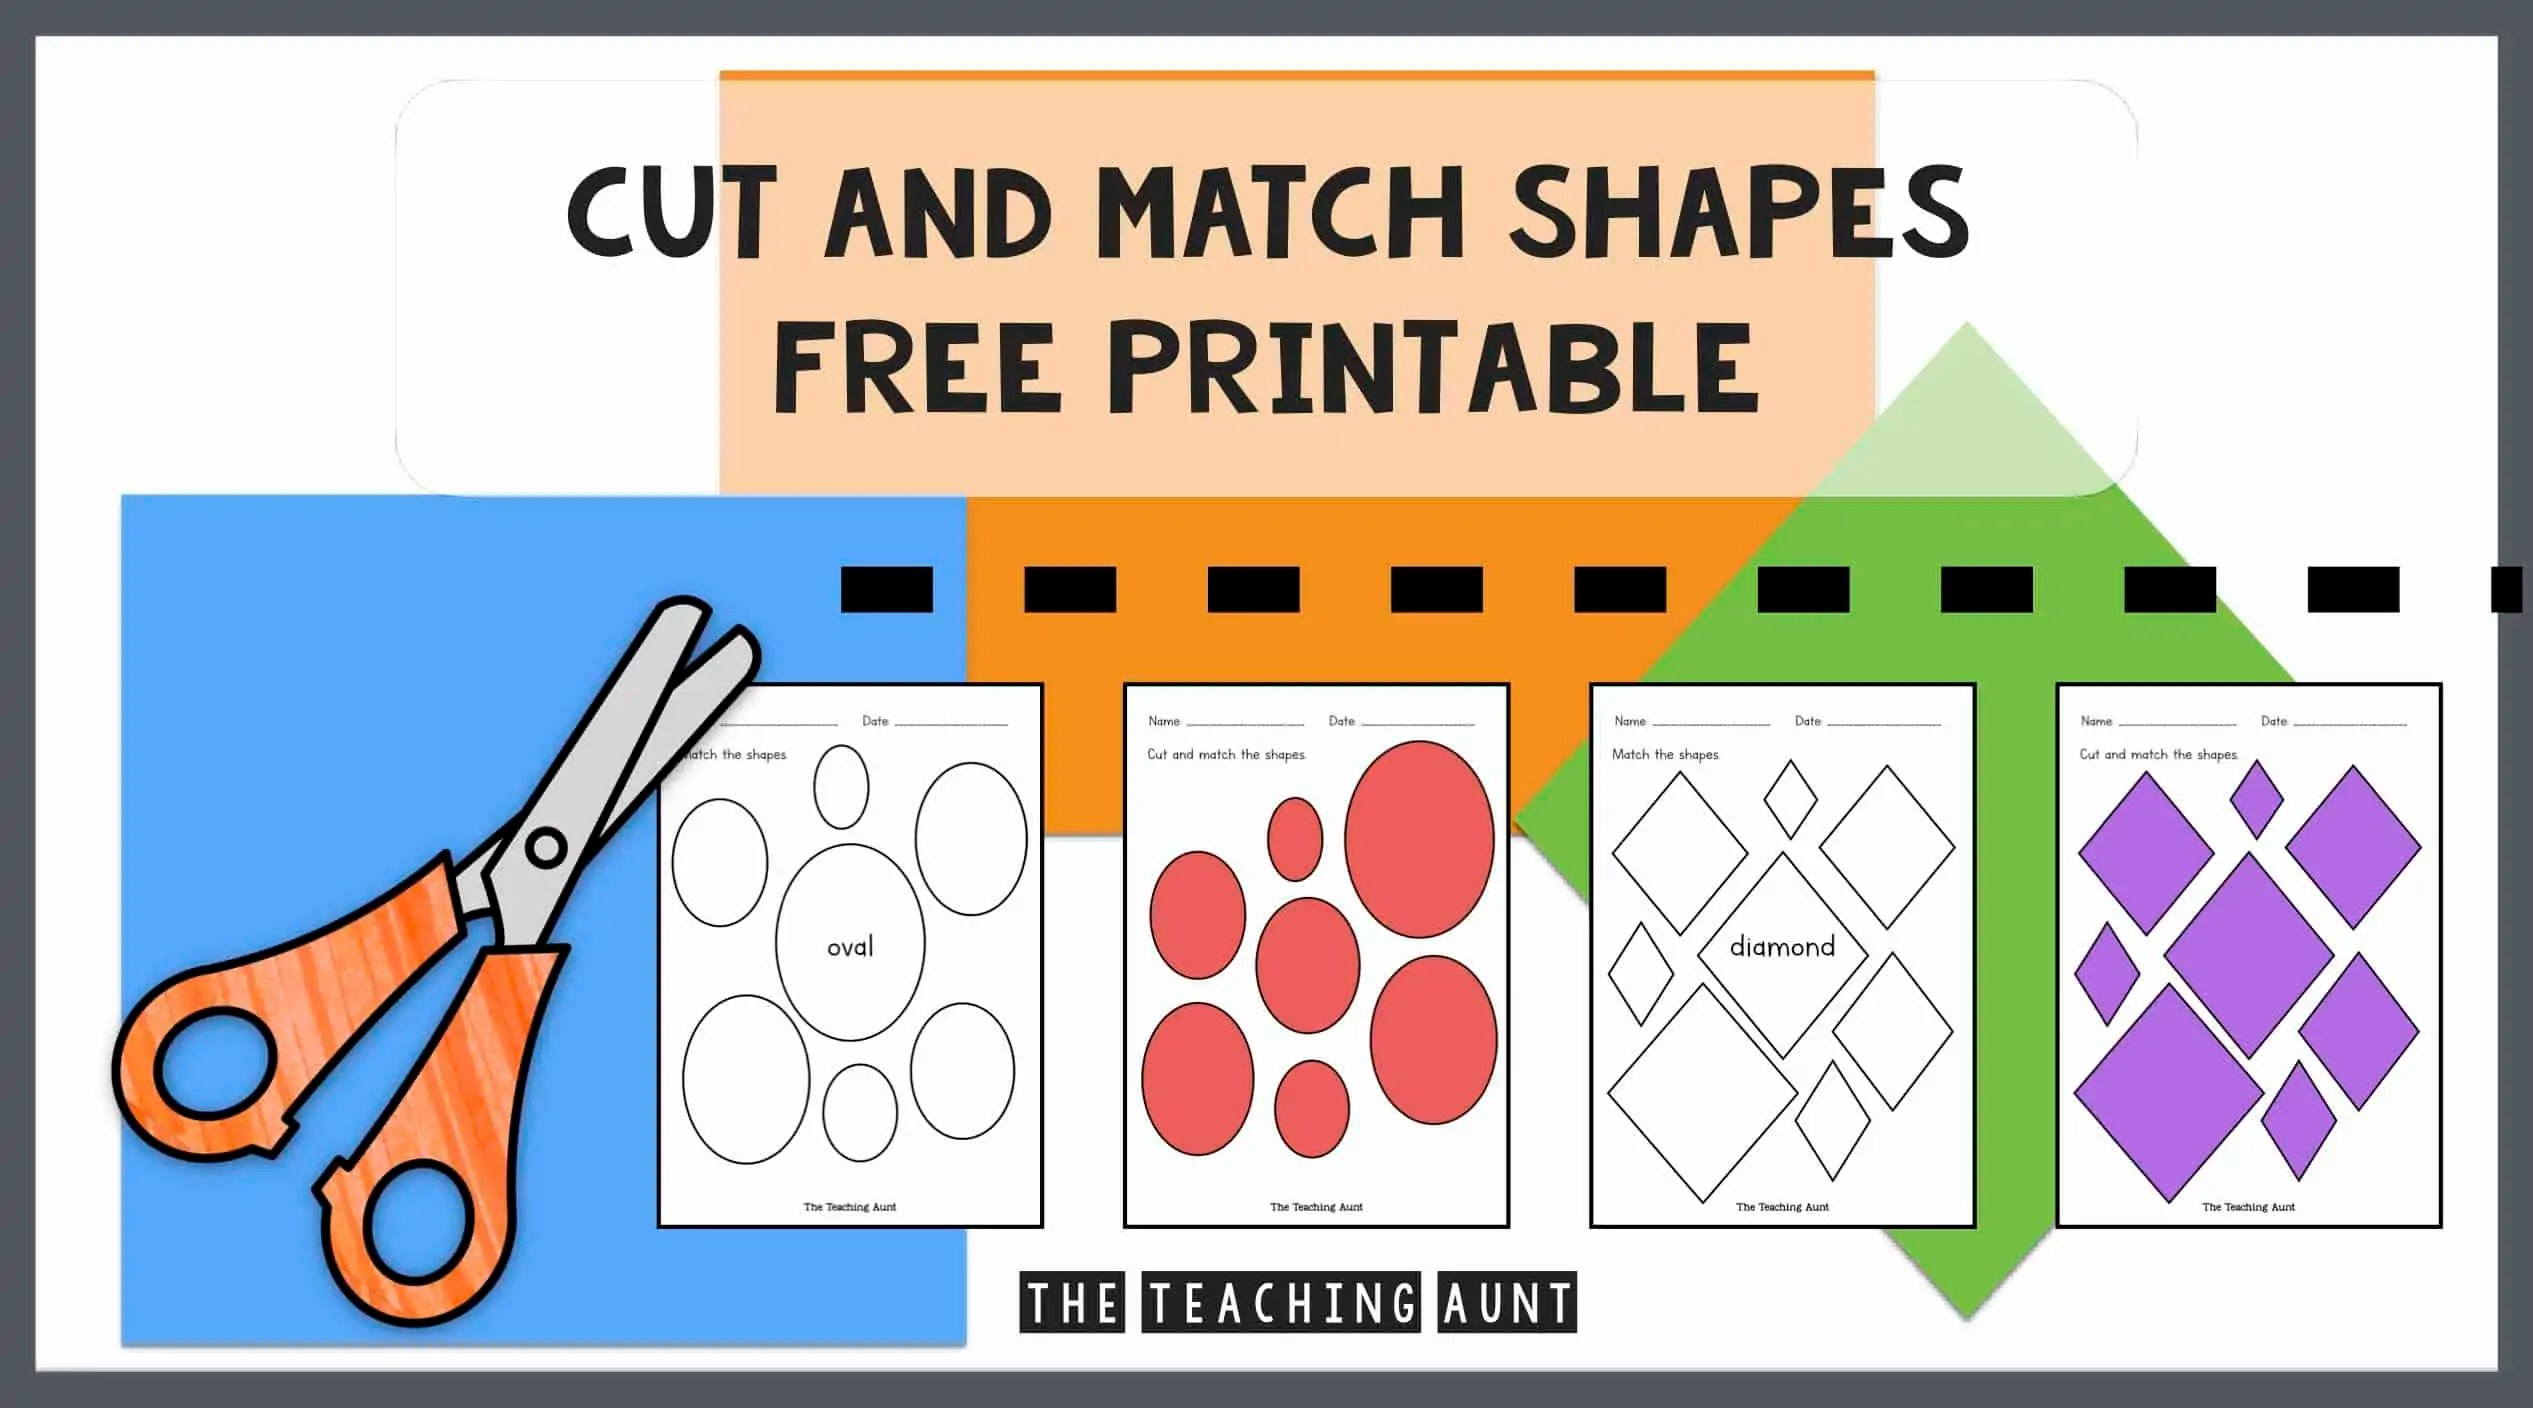 Cut and Match Shapes Worksheets - The Teaching Aunt